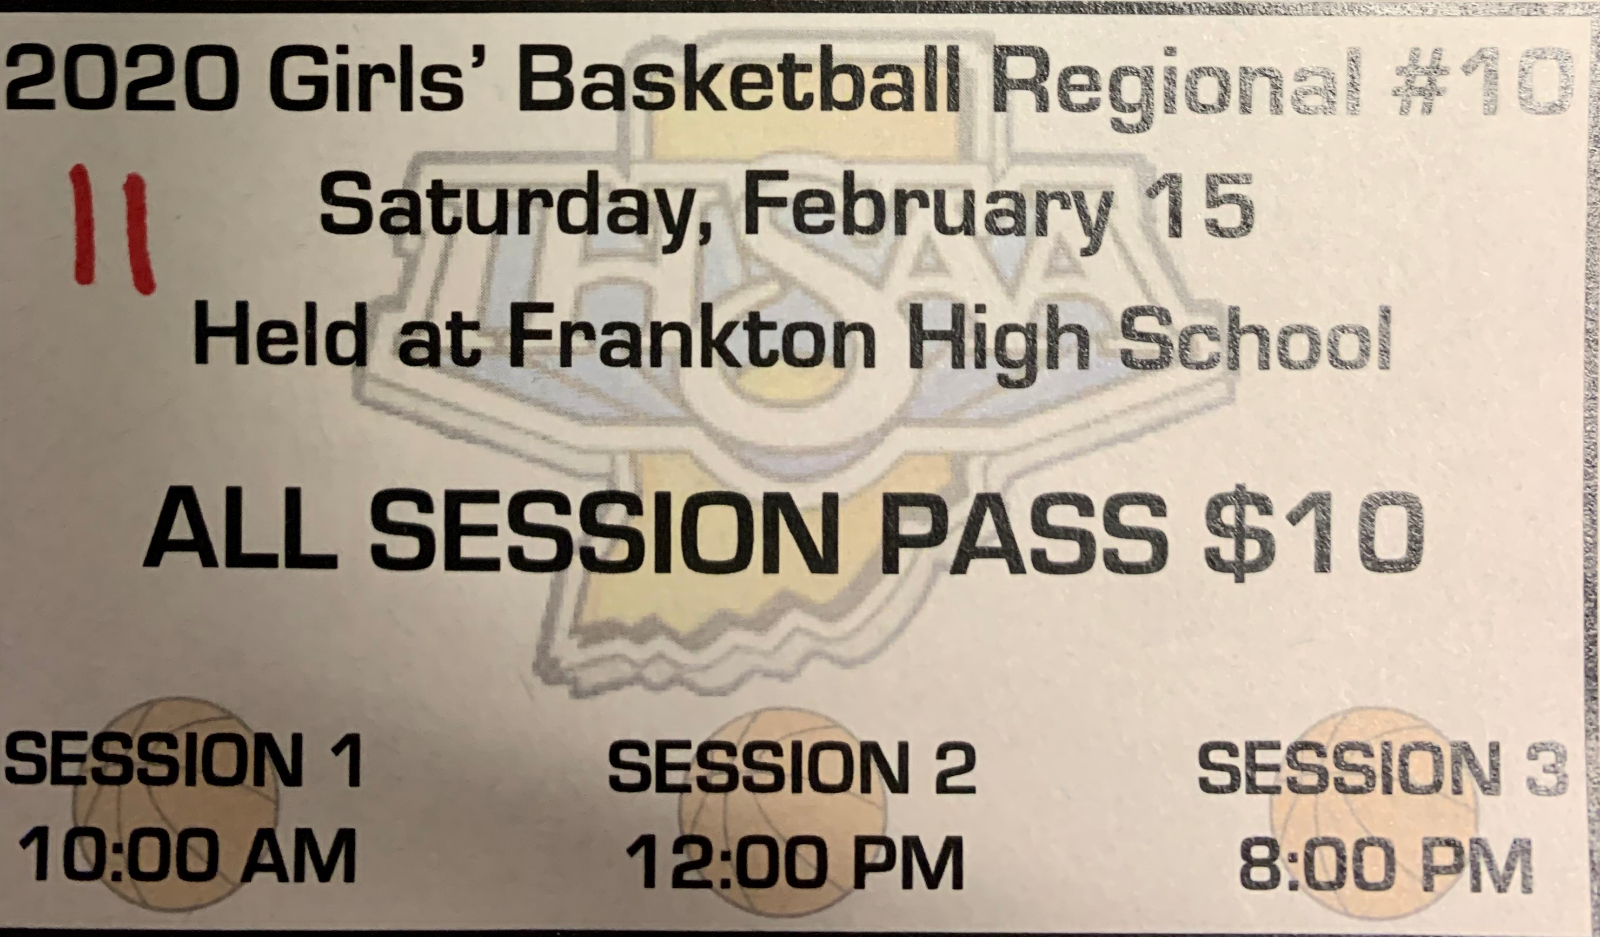 Regional Girls Basketball Presale Tickets